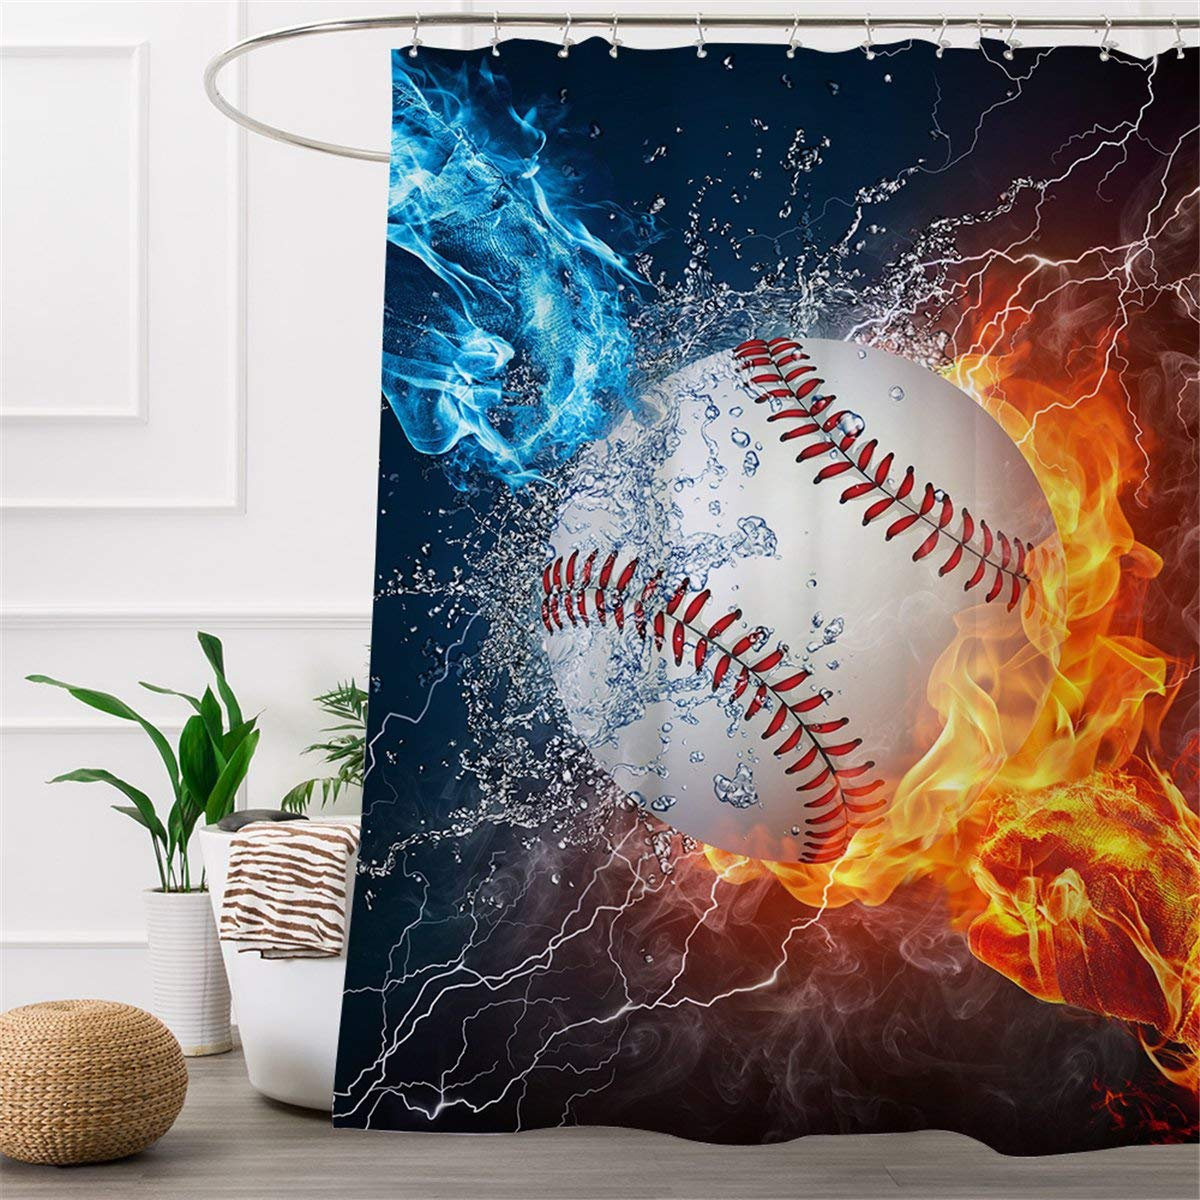 ARIGHTEX Baseball Shower Curtain Sports Decor Set Fist In Fire And Ice Bathroom